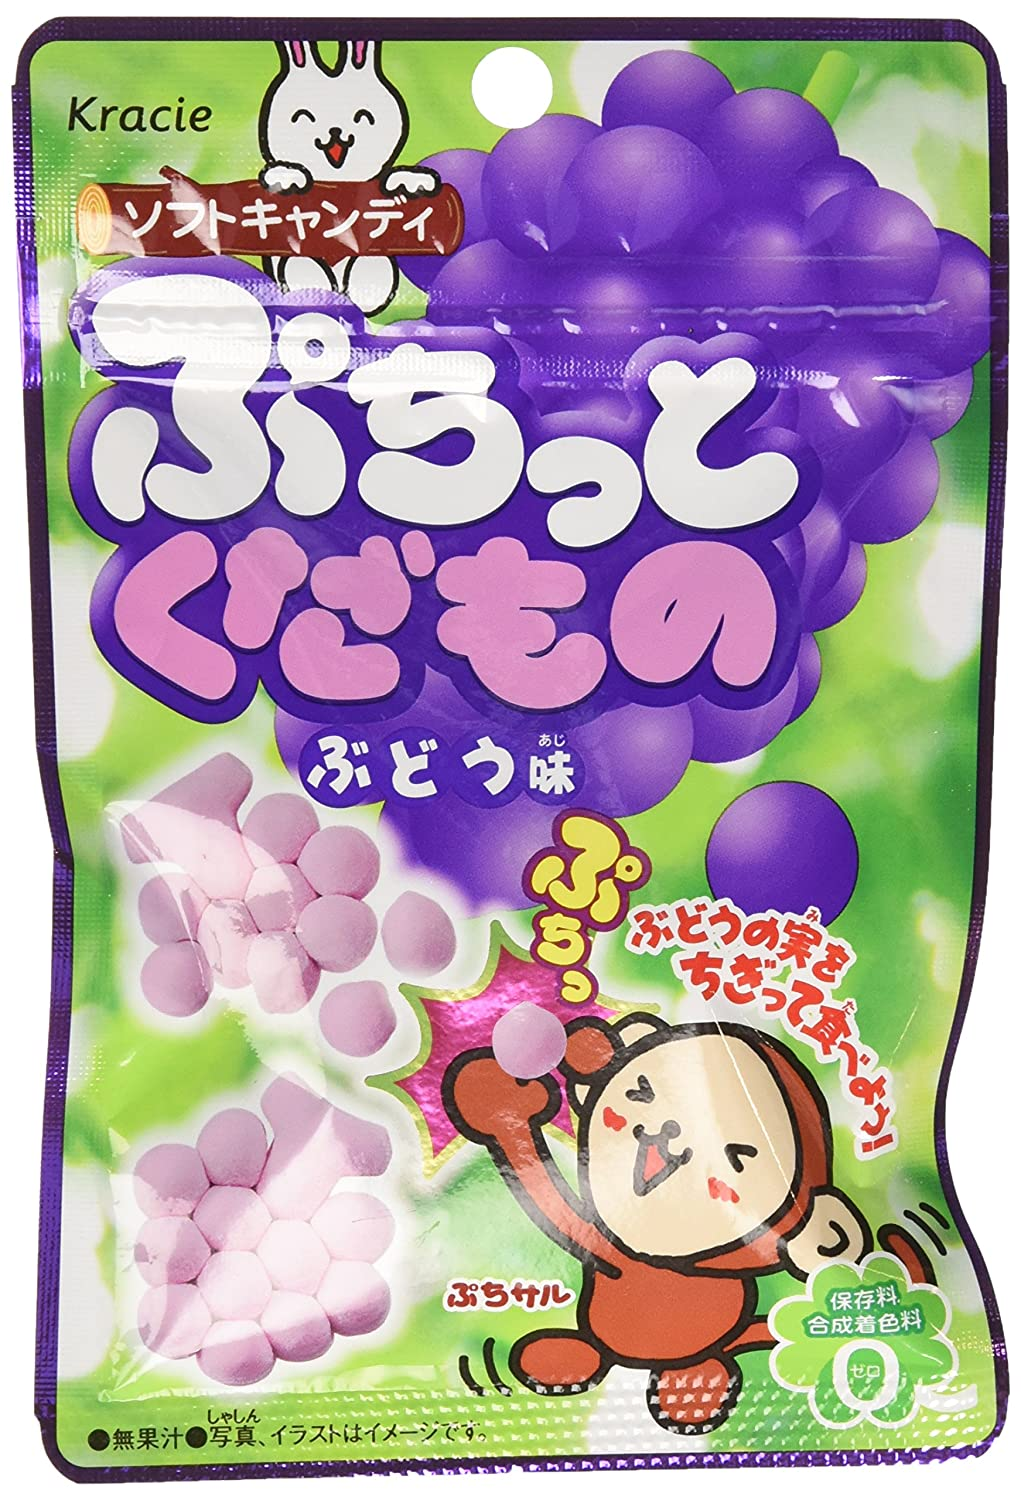 Popin cookin amazon - Puchitto Kudamono Grape Candy By Kracie The Makers Of Popin Cookin Amazon Com Grocery Gourmet Food